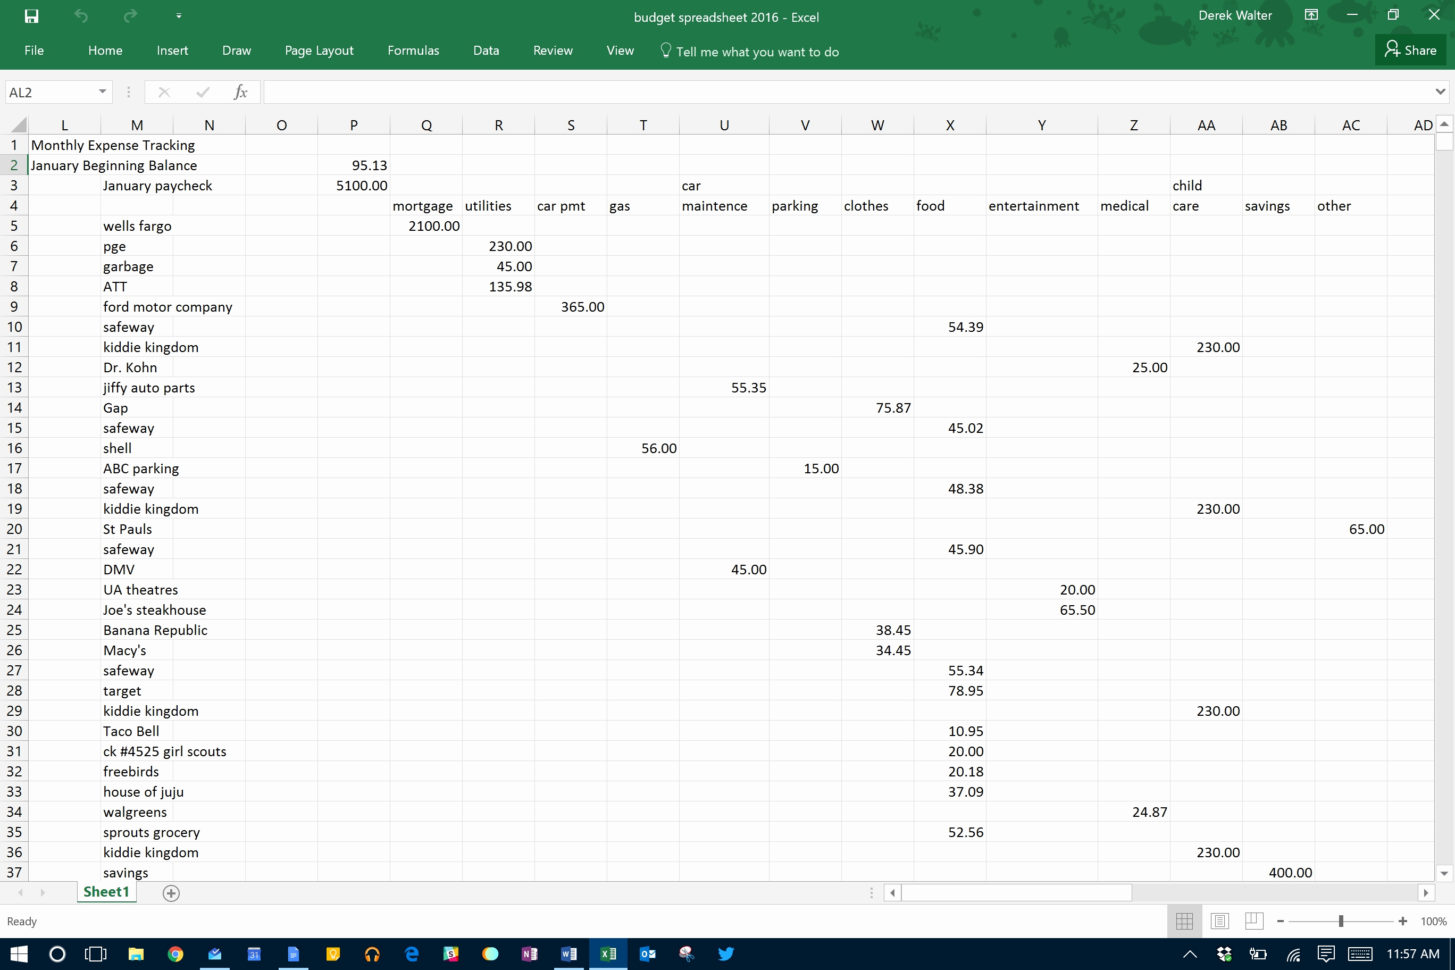 Overtime Tracking Spreadsheet For Employee Attendance Tracking Within Employee Attendance Tracking Spreadsheet